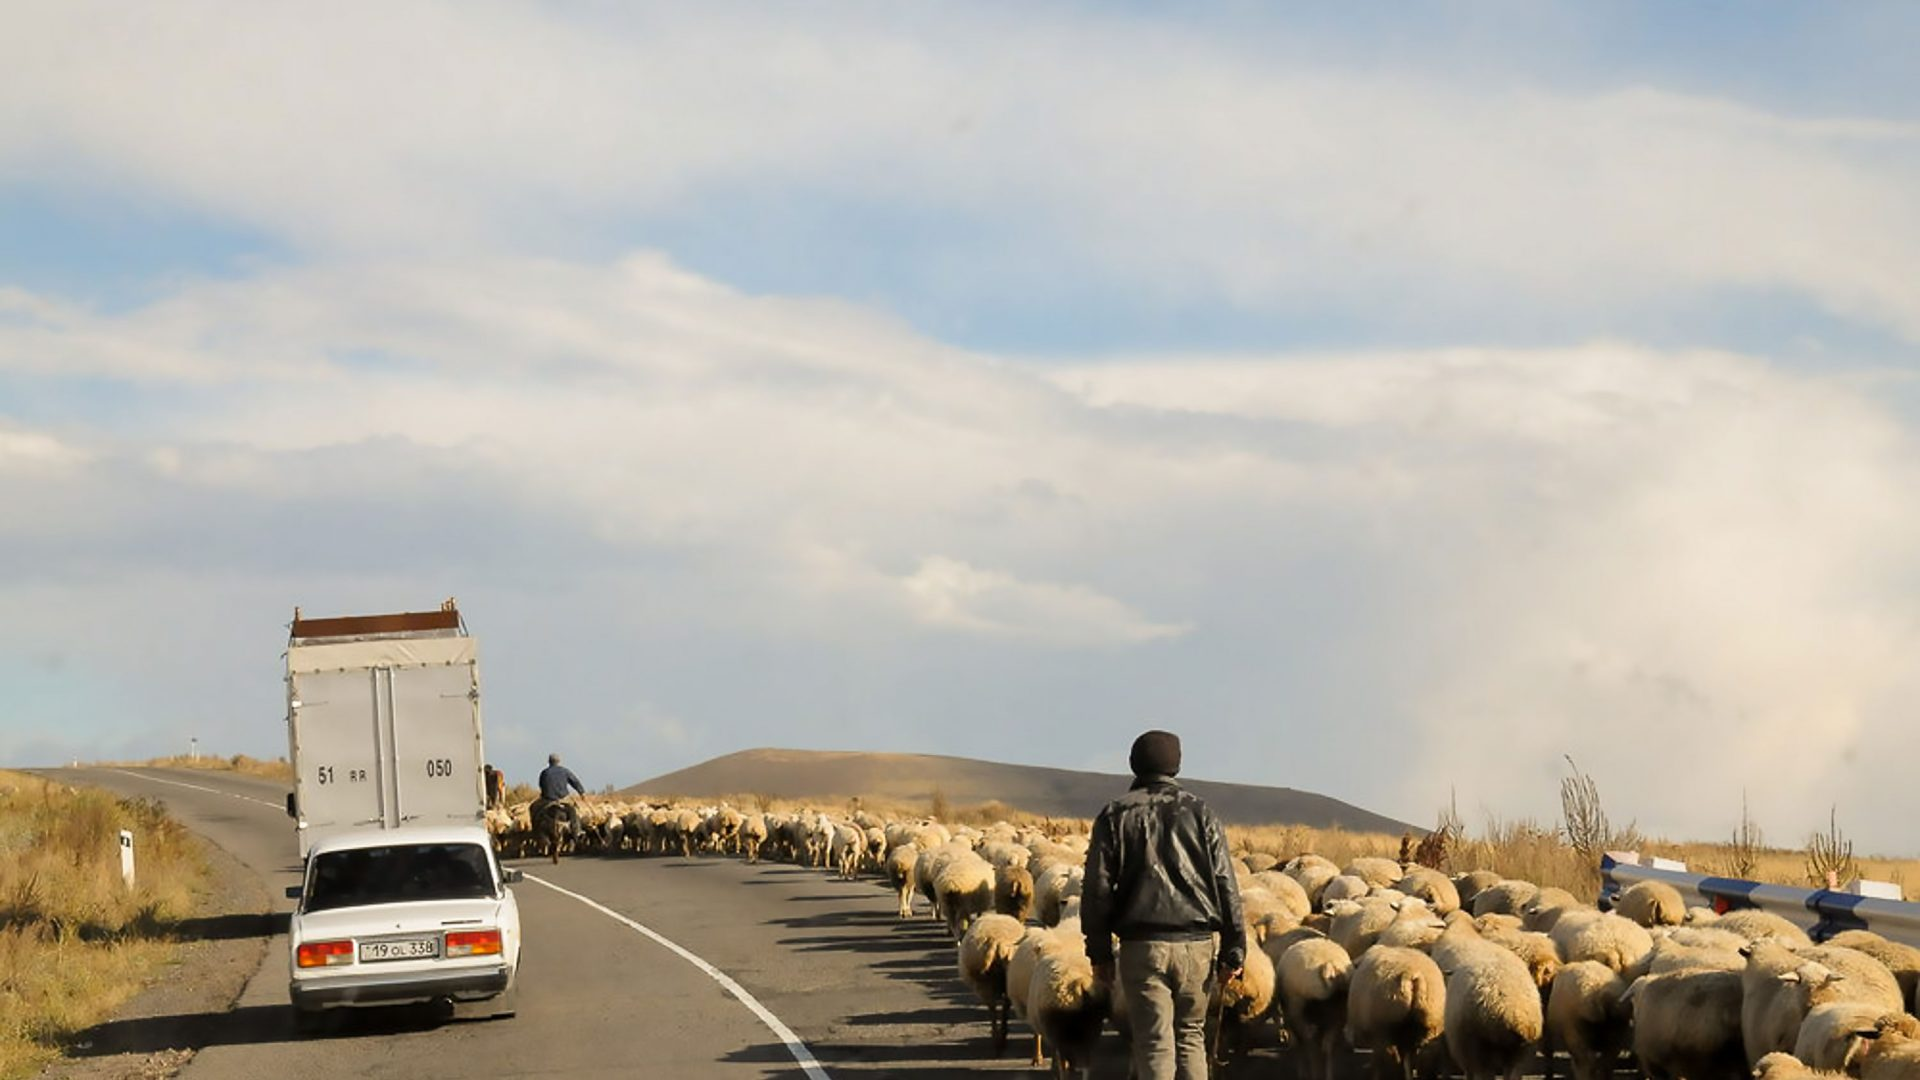 Sheep and traffic compete for road space in Nagorno Karabakh, Armenia.